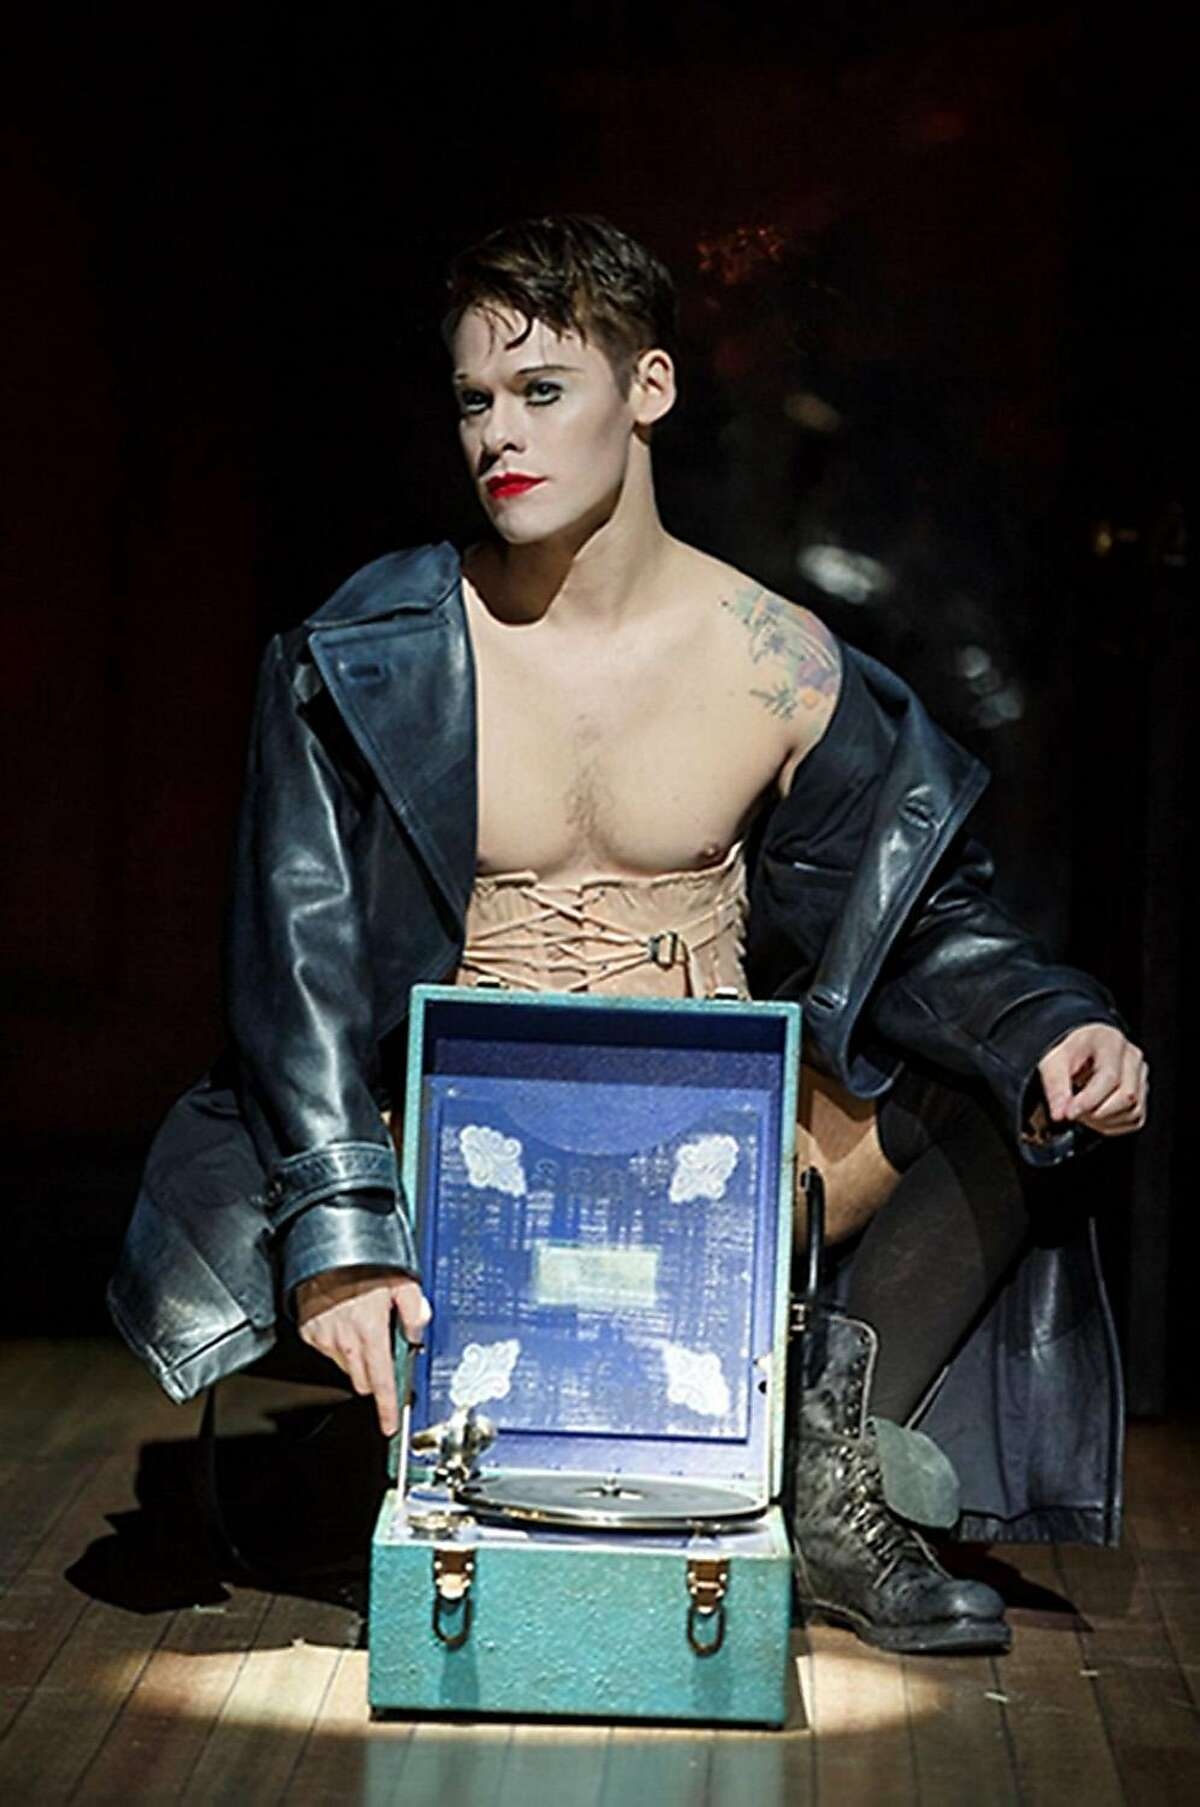 UNSPECIFIED LOCATION - UNSPECIFIED DATE: In this handout photo provided by Joan Marcus, Randy Harrison as the Emcee in the National Tour of Roundabout Theatre Company's CABARET. Photo by Joan Marcus. The musical theater performance comes direct from Broadway to the Adrienne Arsht Center for the Performing Arts of Miami-Dade County, April 12 - 17, 2016. (Photo by Joan Marcus via Getty Images)